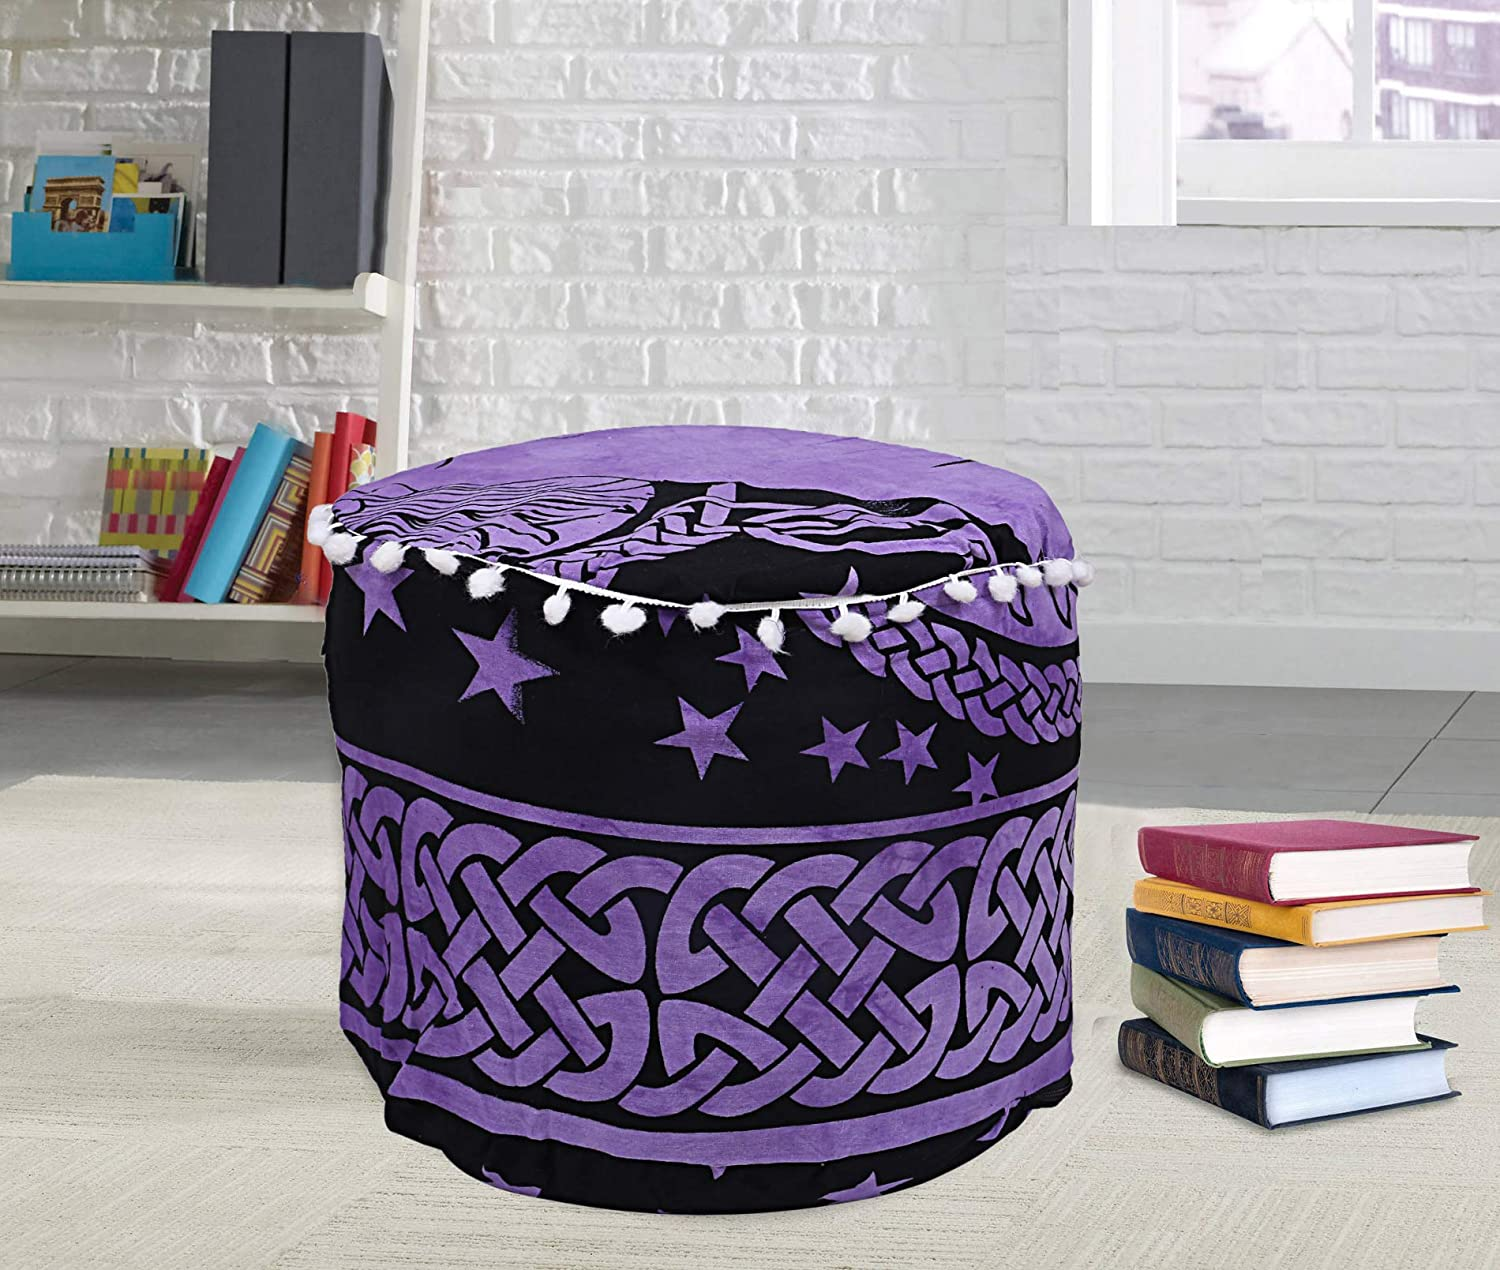 Janki Creation Indian Mandala Ottoman Pouf Cover Round Floor Pillow Ottoman Living Room Large Seating Floor Pillow Cover (18 x 18 x 13 Inch)